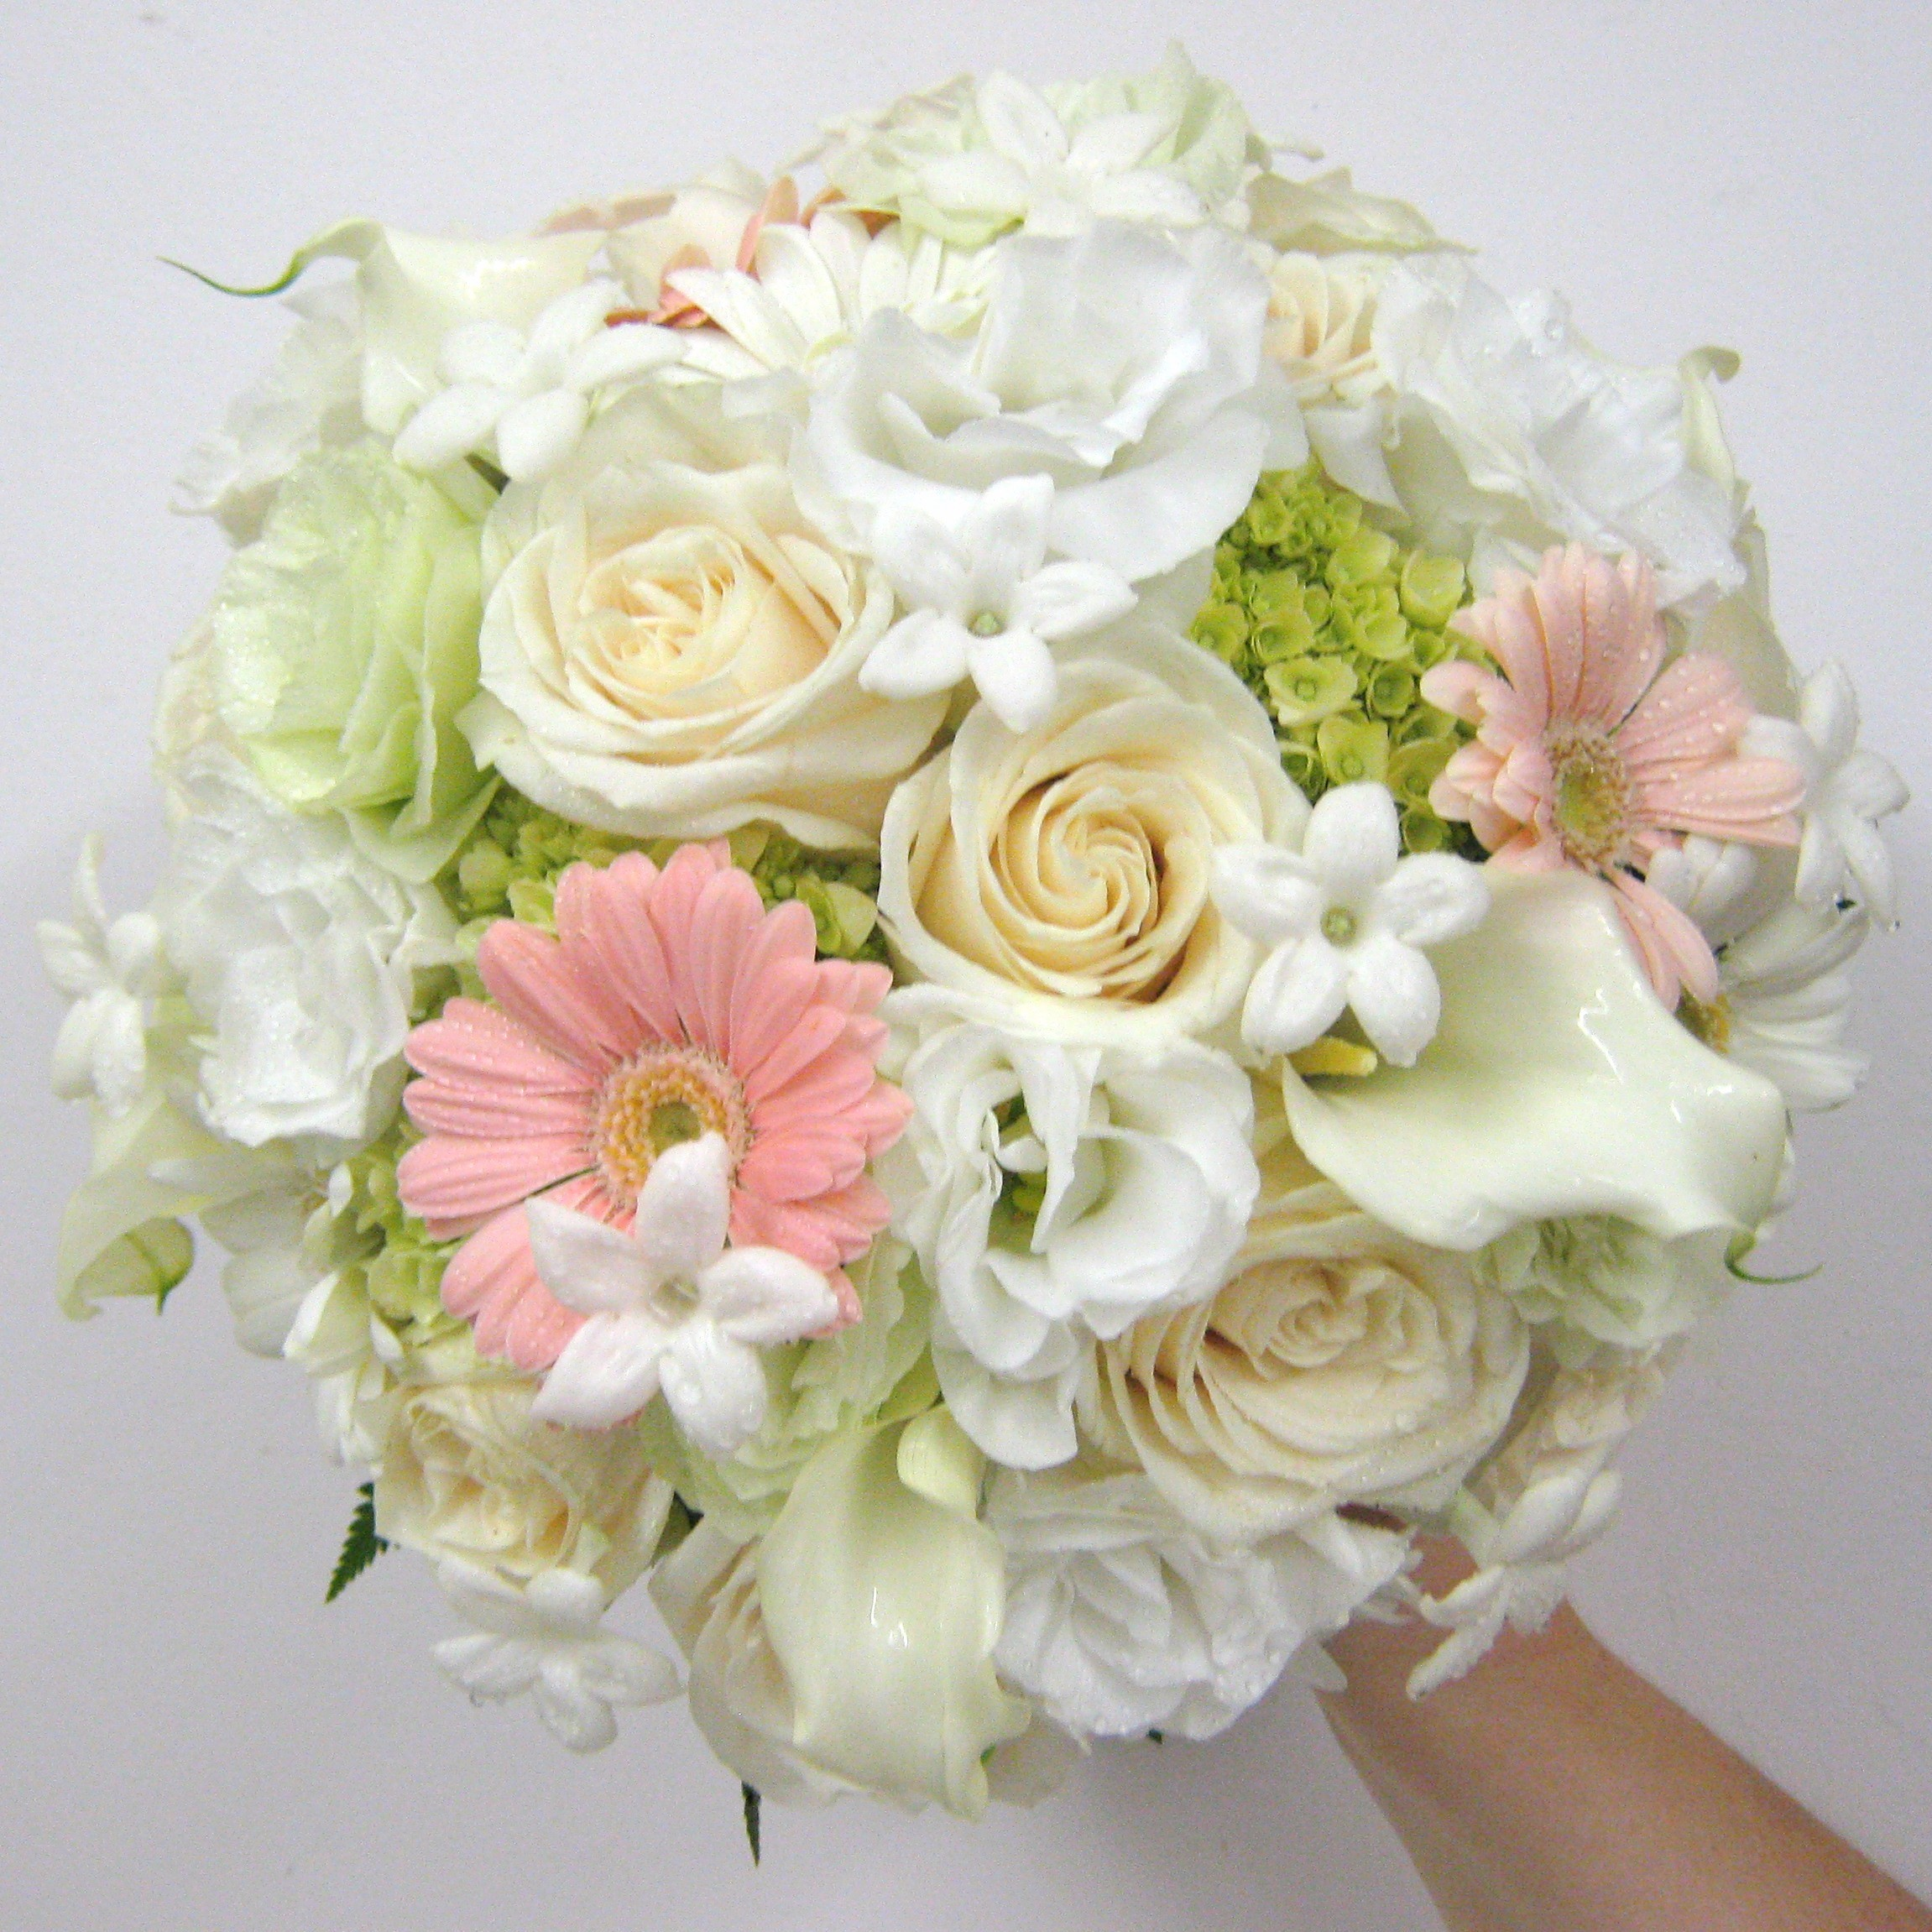 Flower Wedding Bouquet: Buffalo Wedding & Event Flowers By